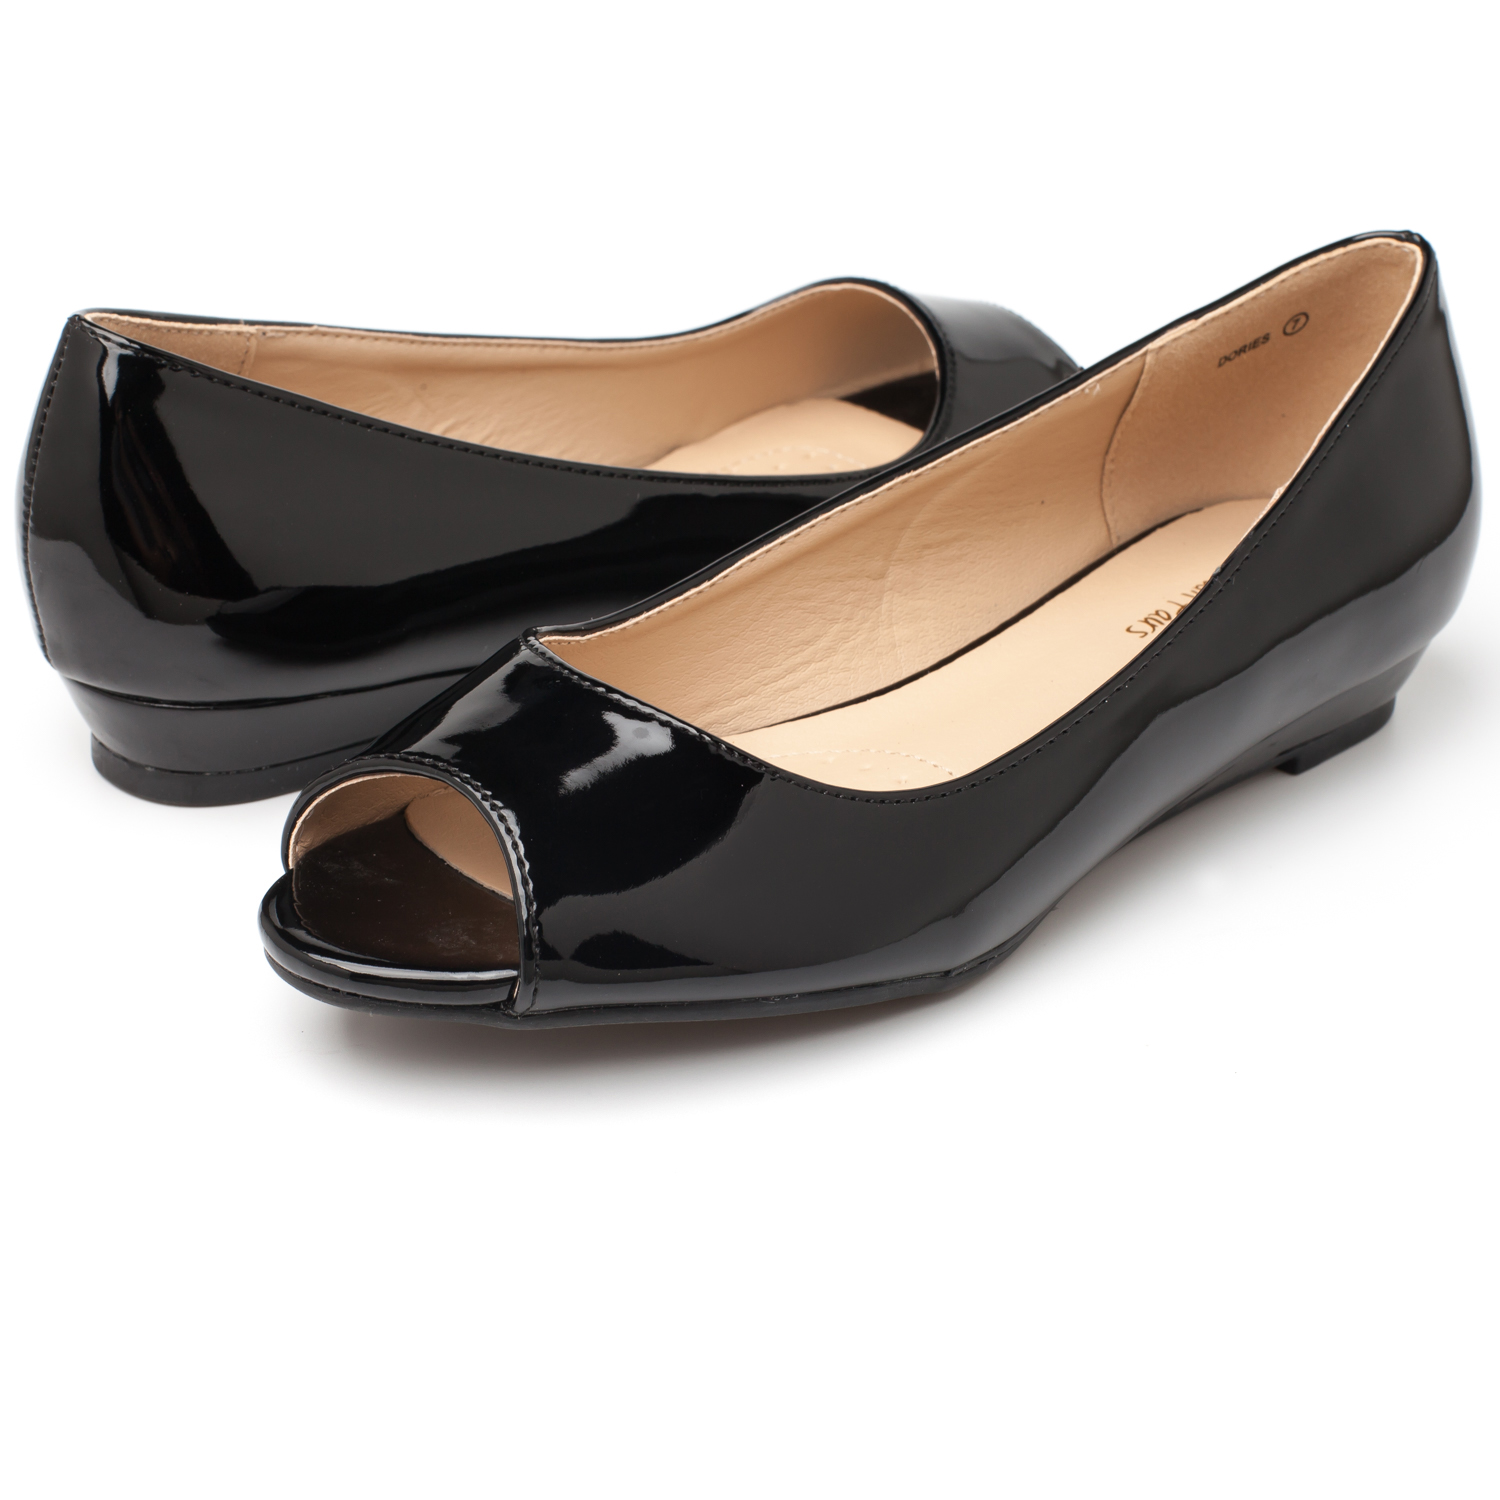 DREAM-PAIRS-Womens-Ballet-Flats-Low-Heel-Open-Toe-Slip-On-Dress-Flat-Shoes thumbnail 35